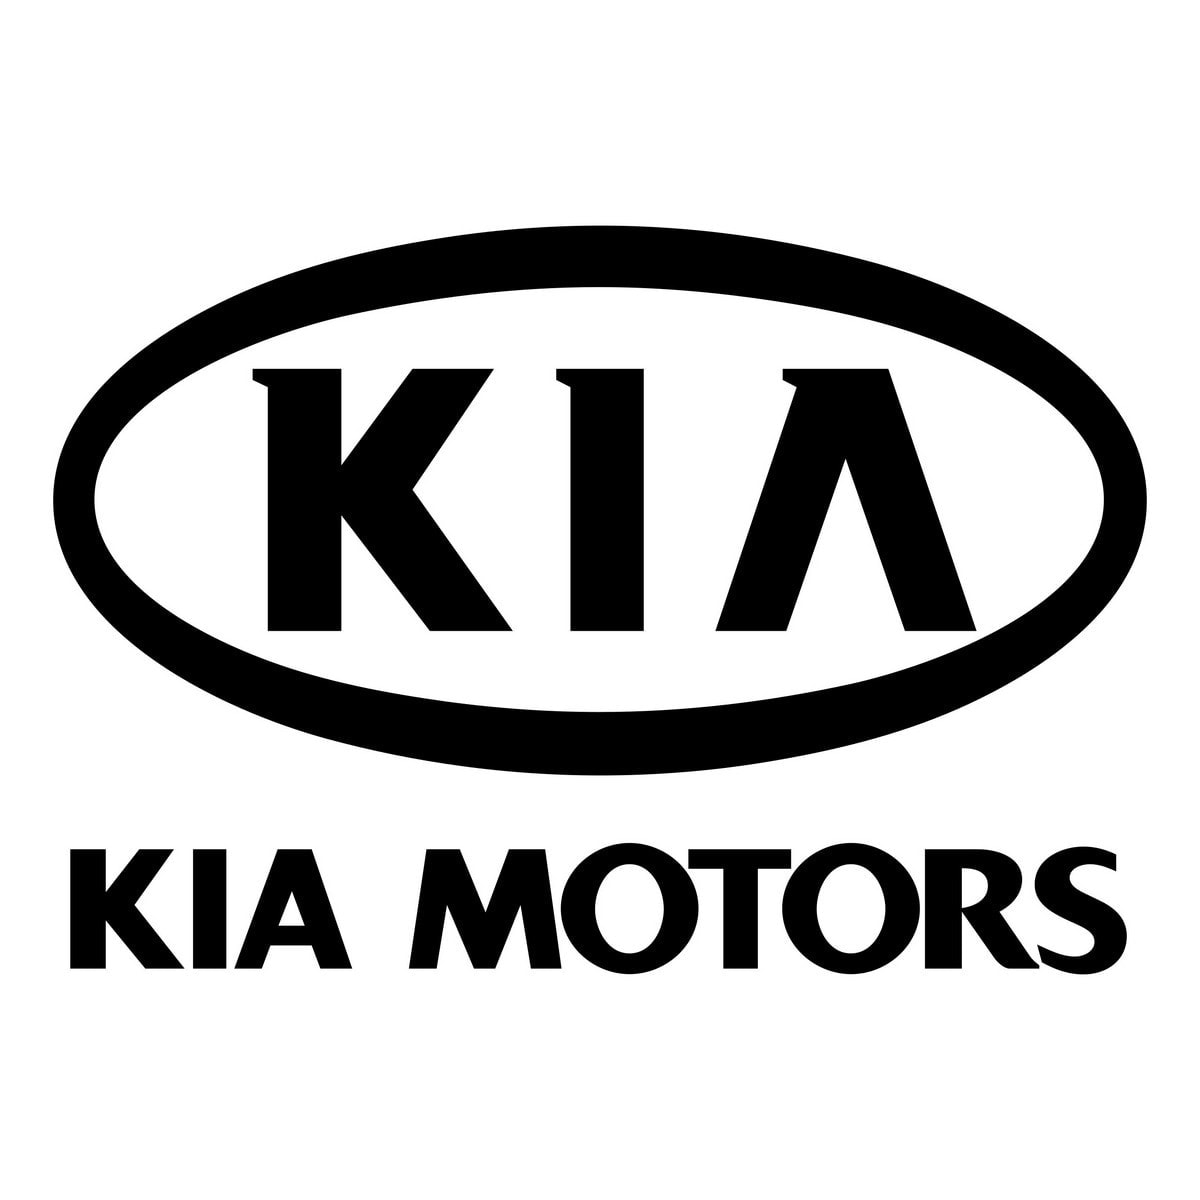 Marketing Mix Of Kia Motors